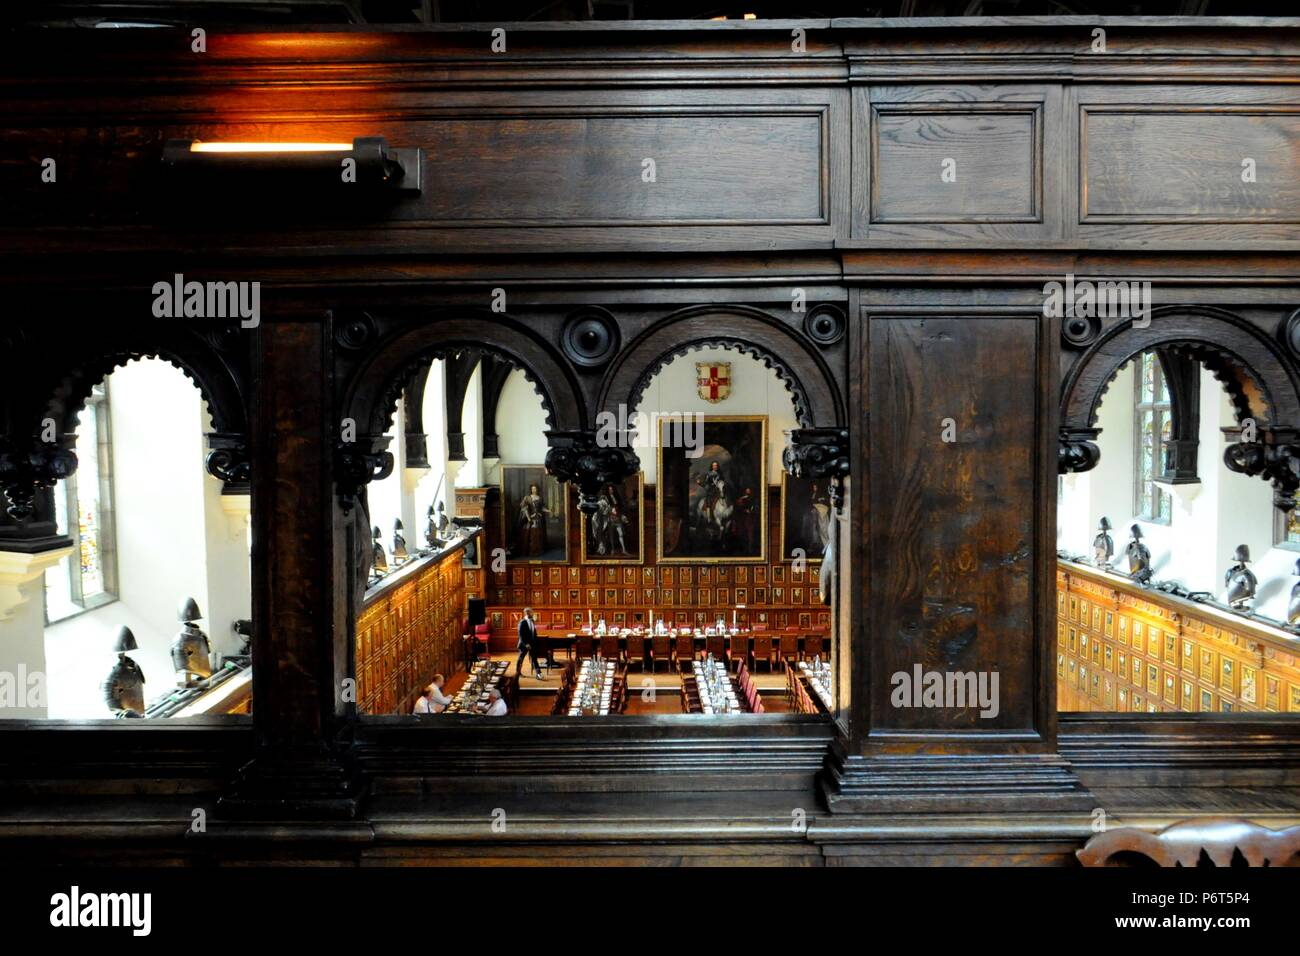 Middle Temple Hall, London UK. - Stock Image